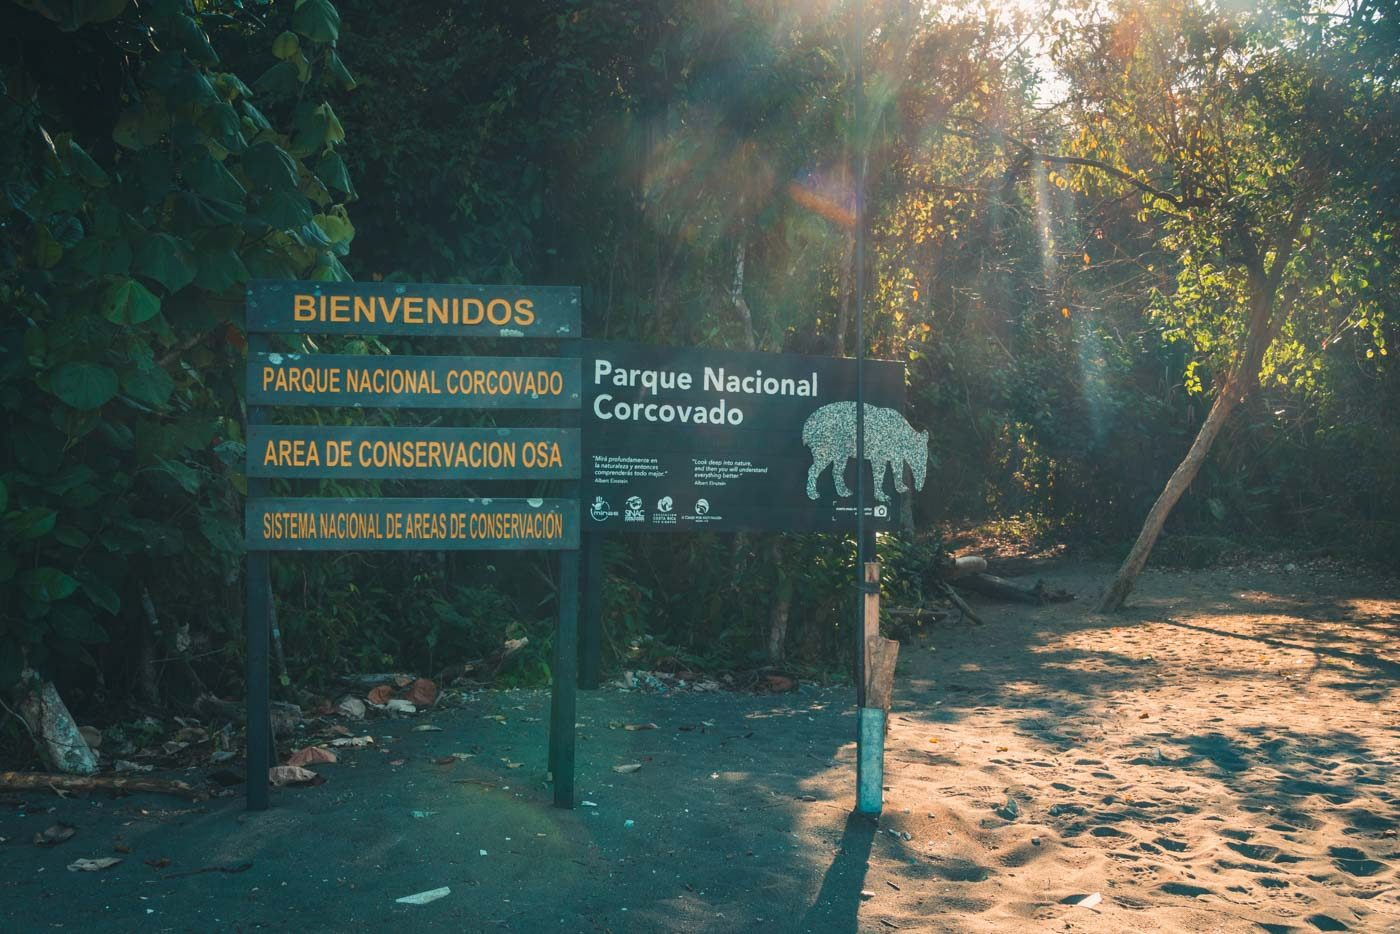 Corcovado National Park, exotic animals in natural habitat